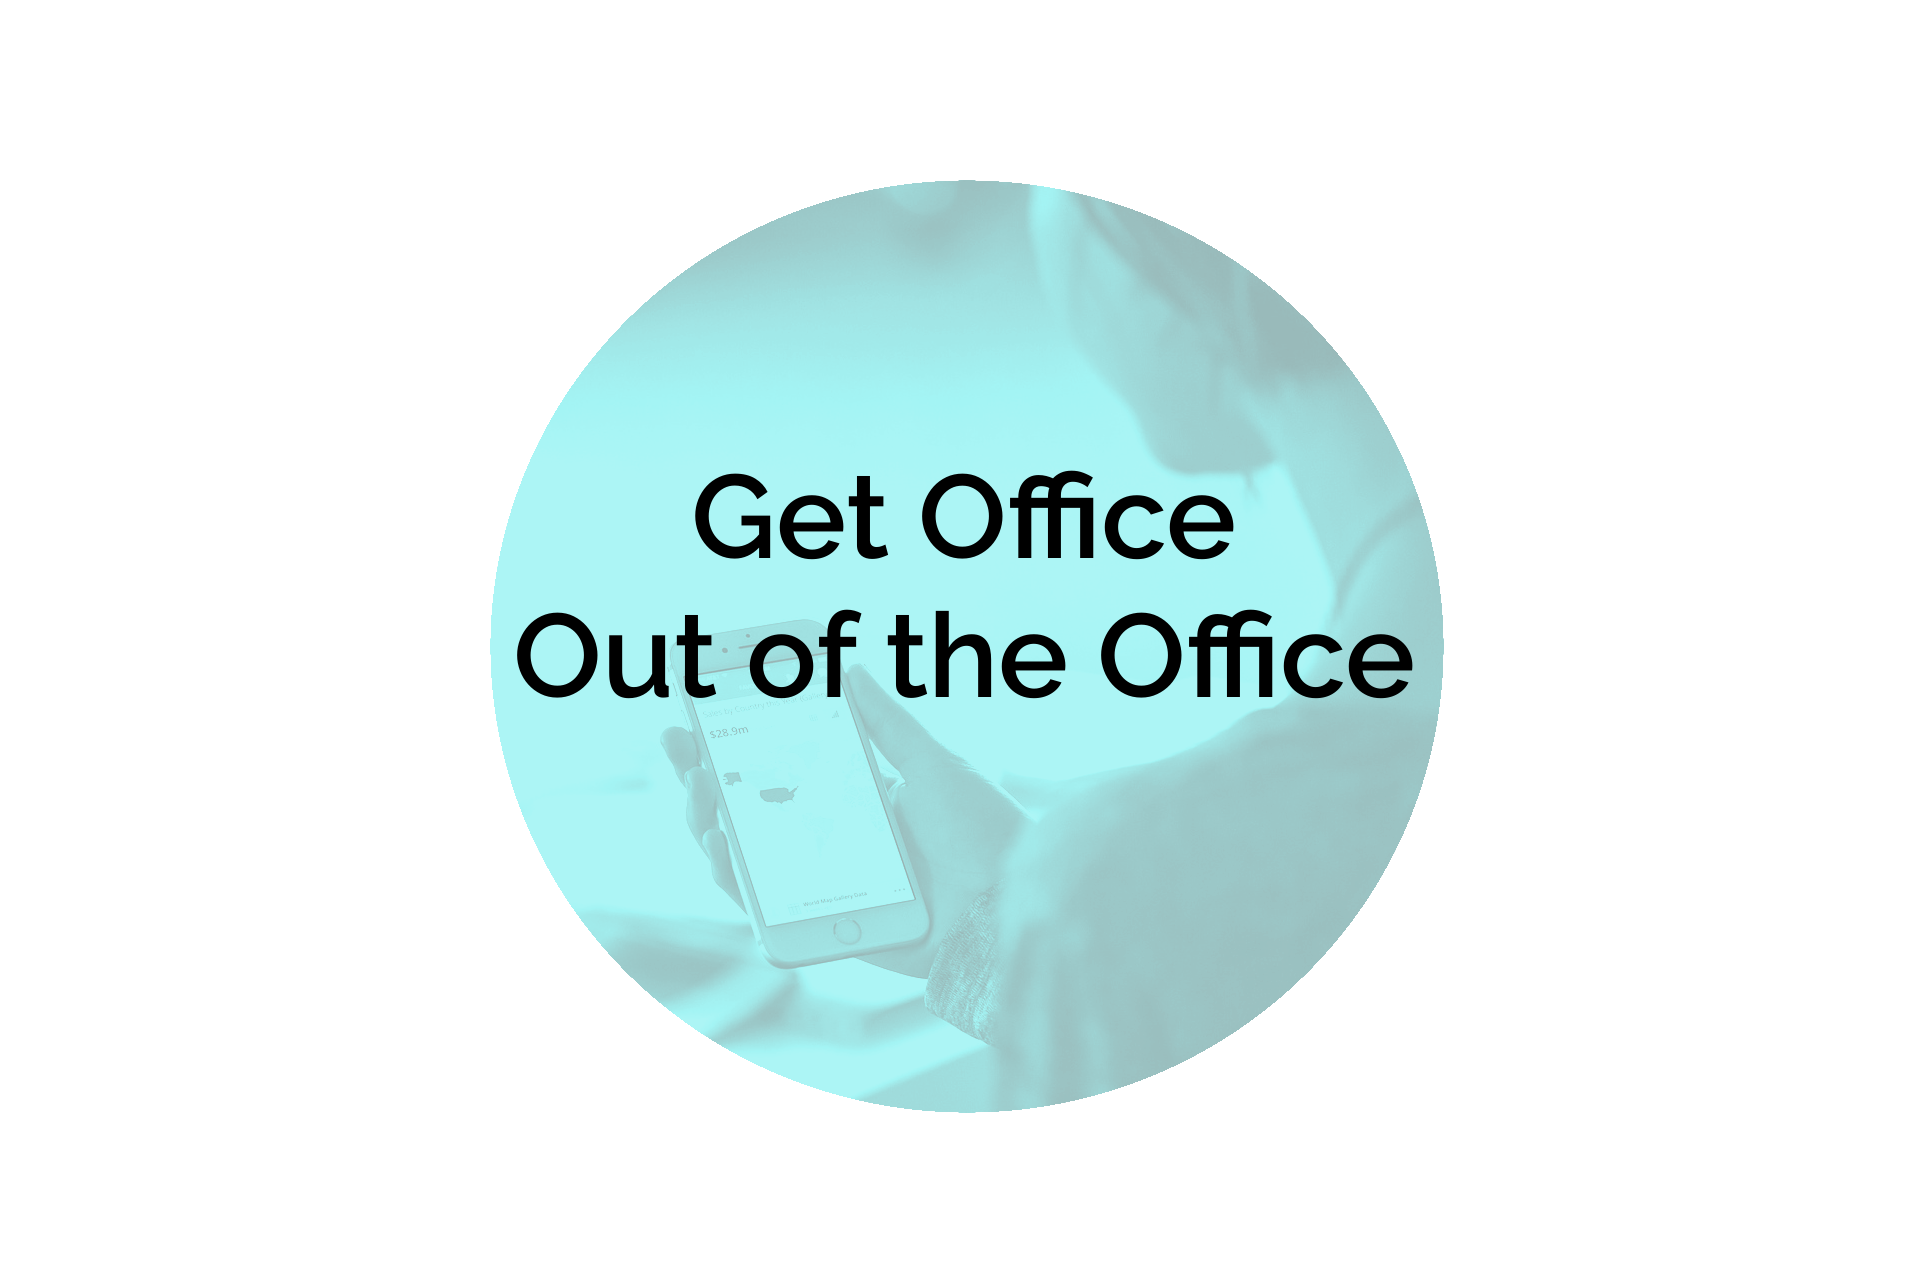 Access your files on the go with Office subscriptions included for your first user.